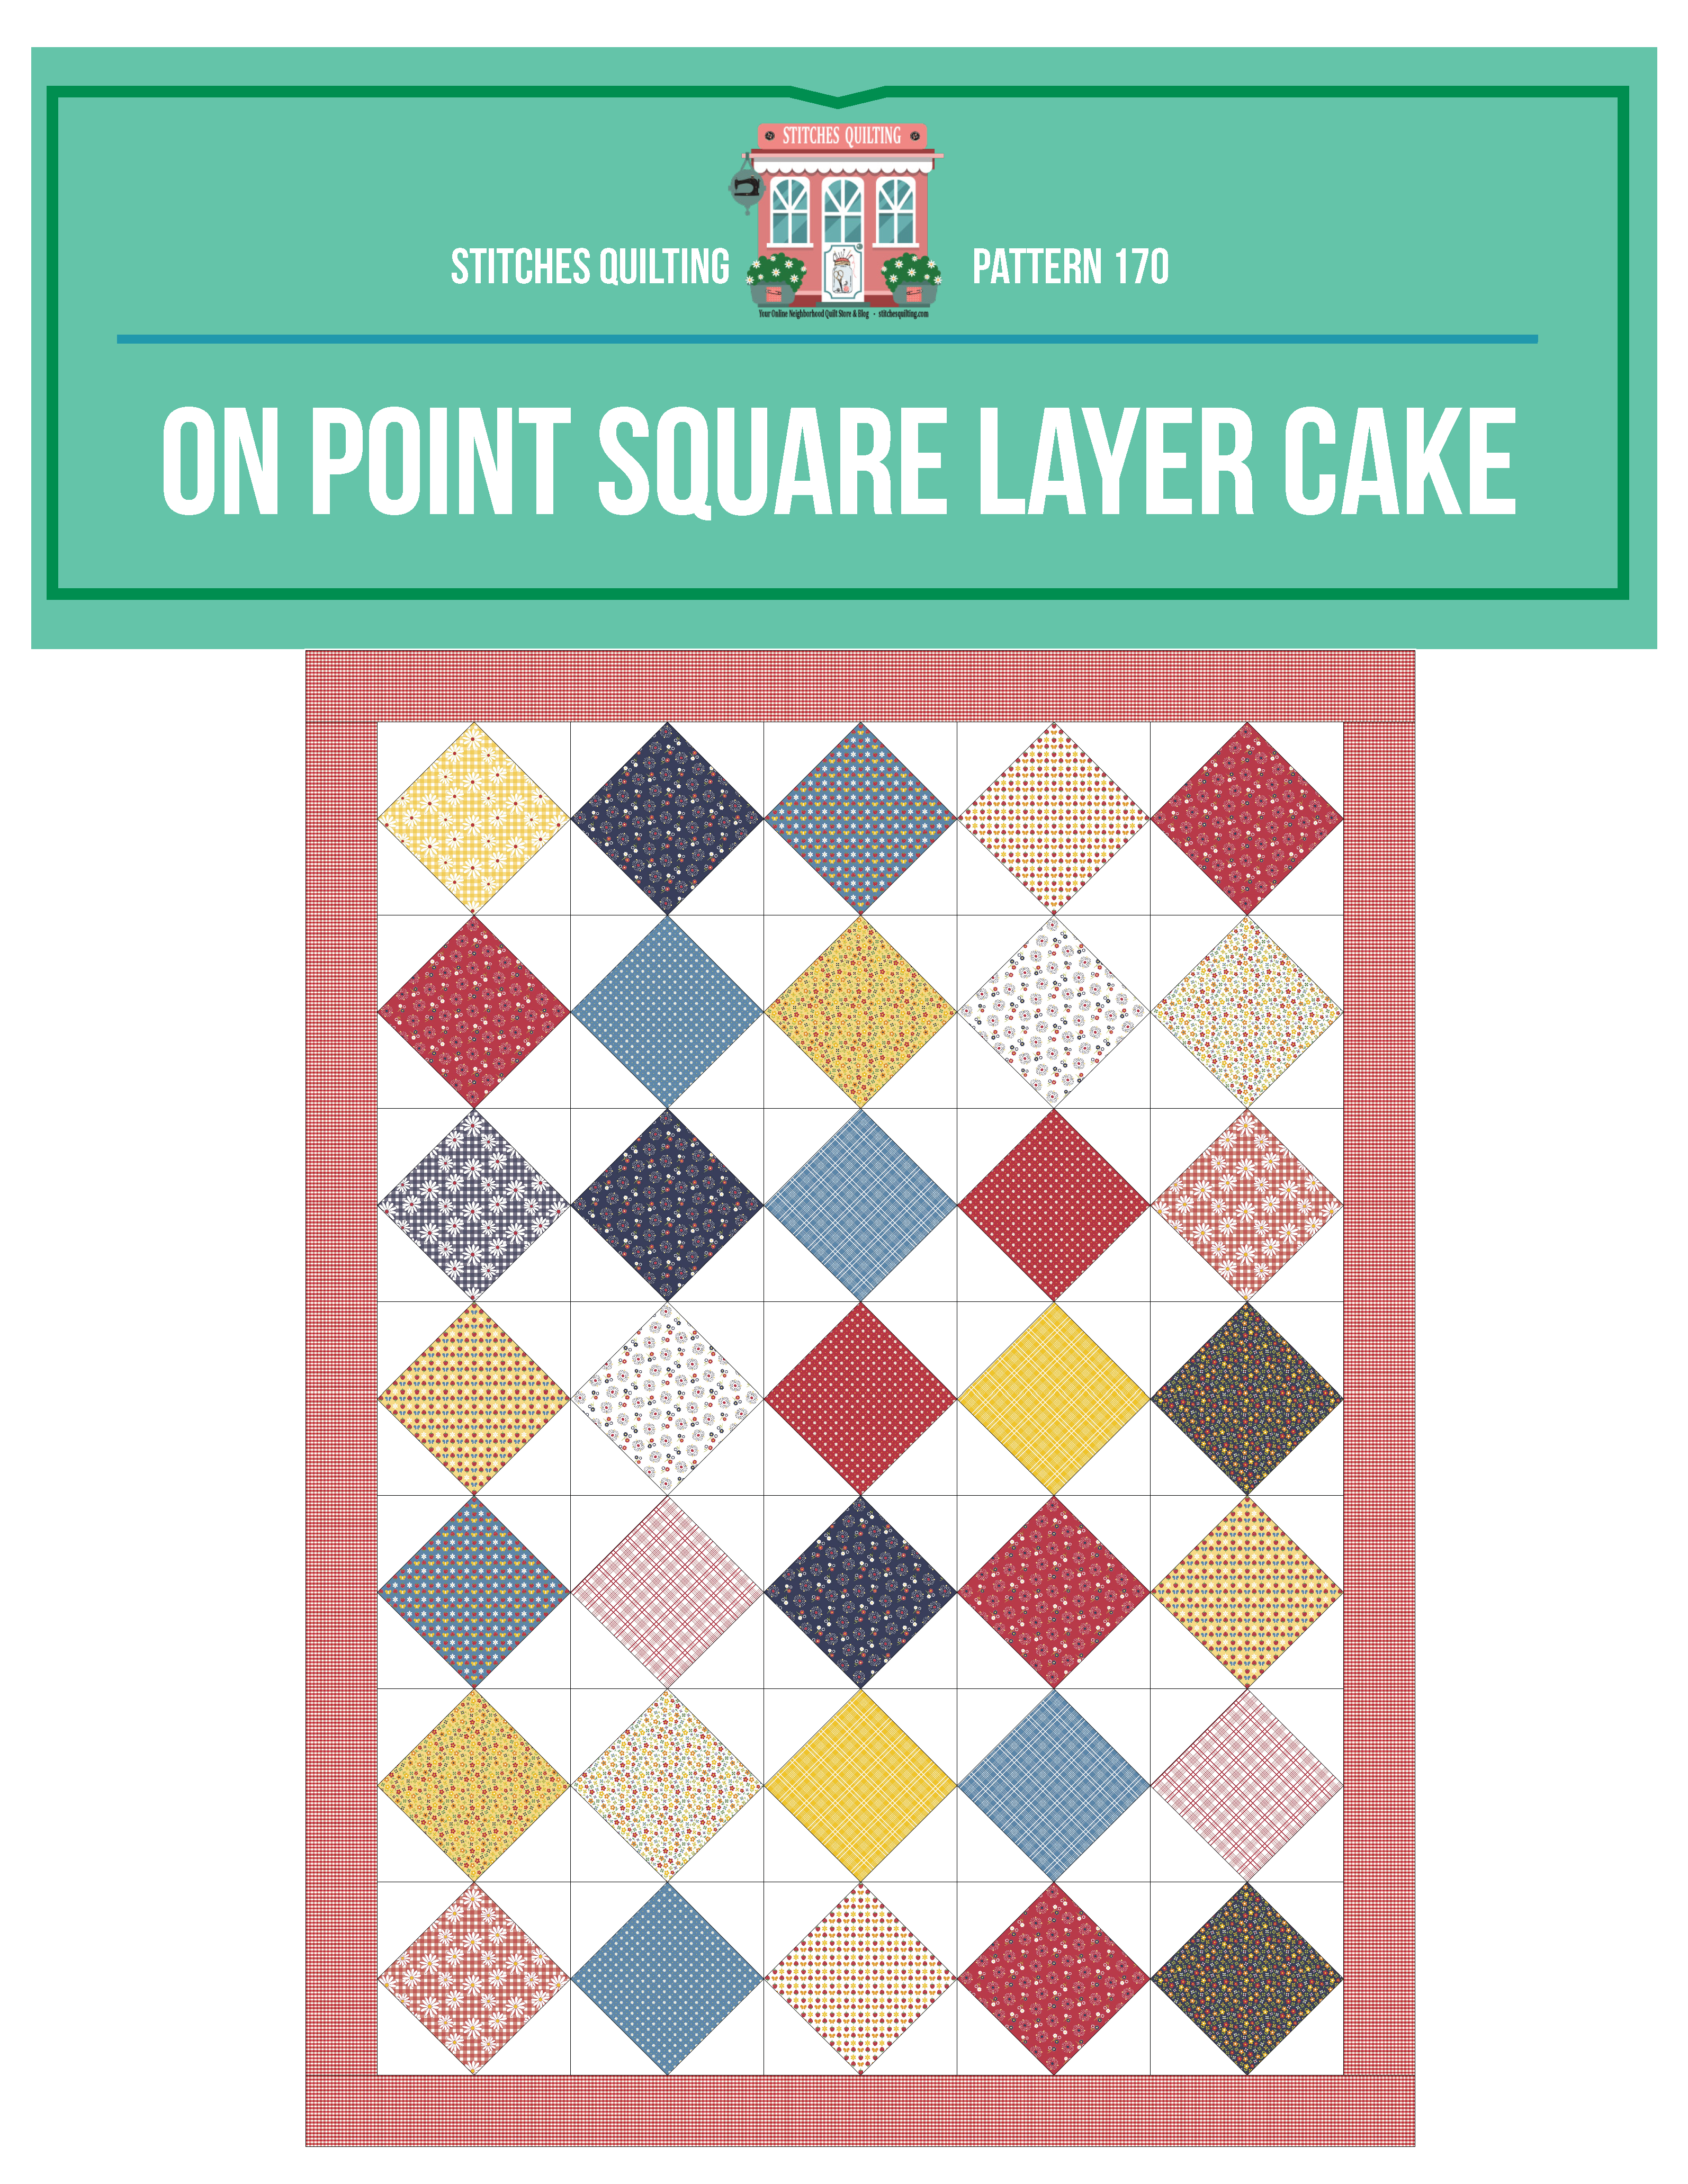 Onpoint square layer cake quilt tutorial free pattern stitches download onpoint square layer cake quilt pattern maxwellsz